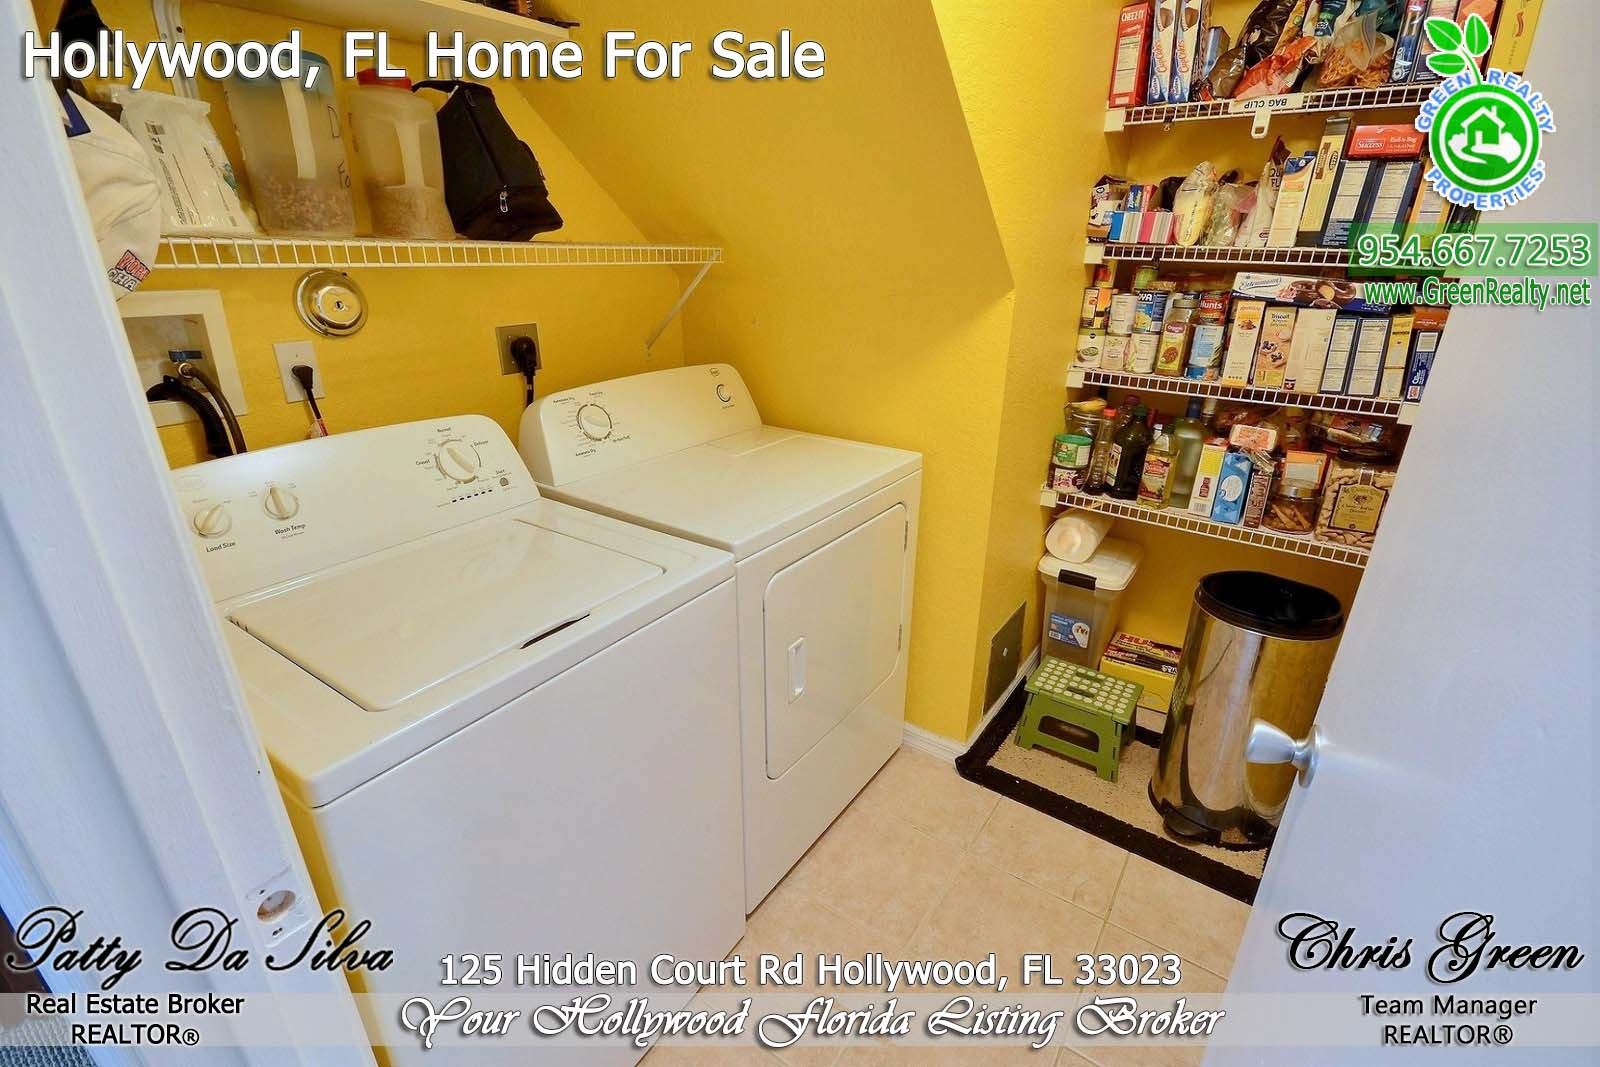 18 Homes For Sale in Hollywood Florida (1)